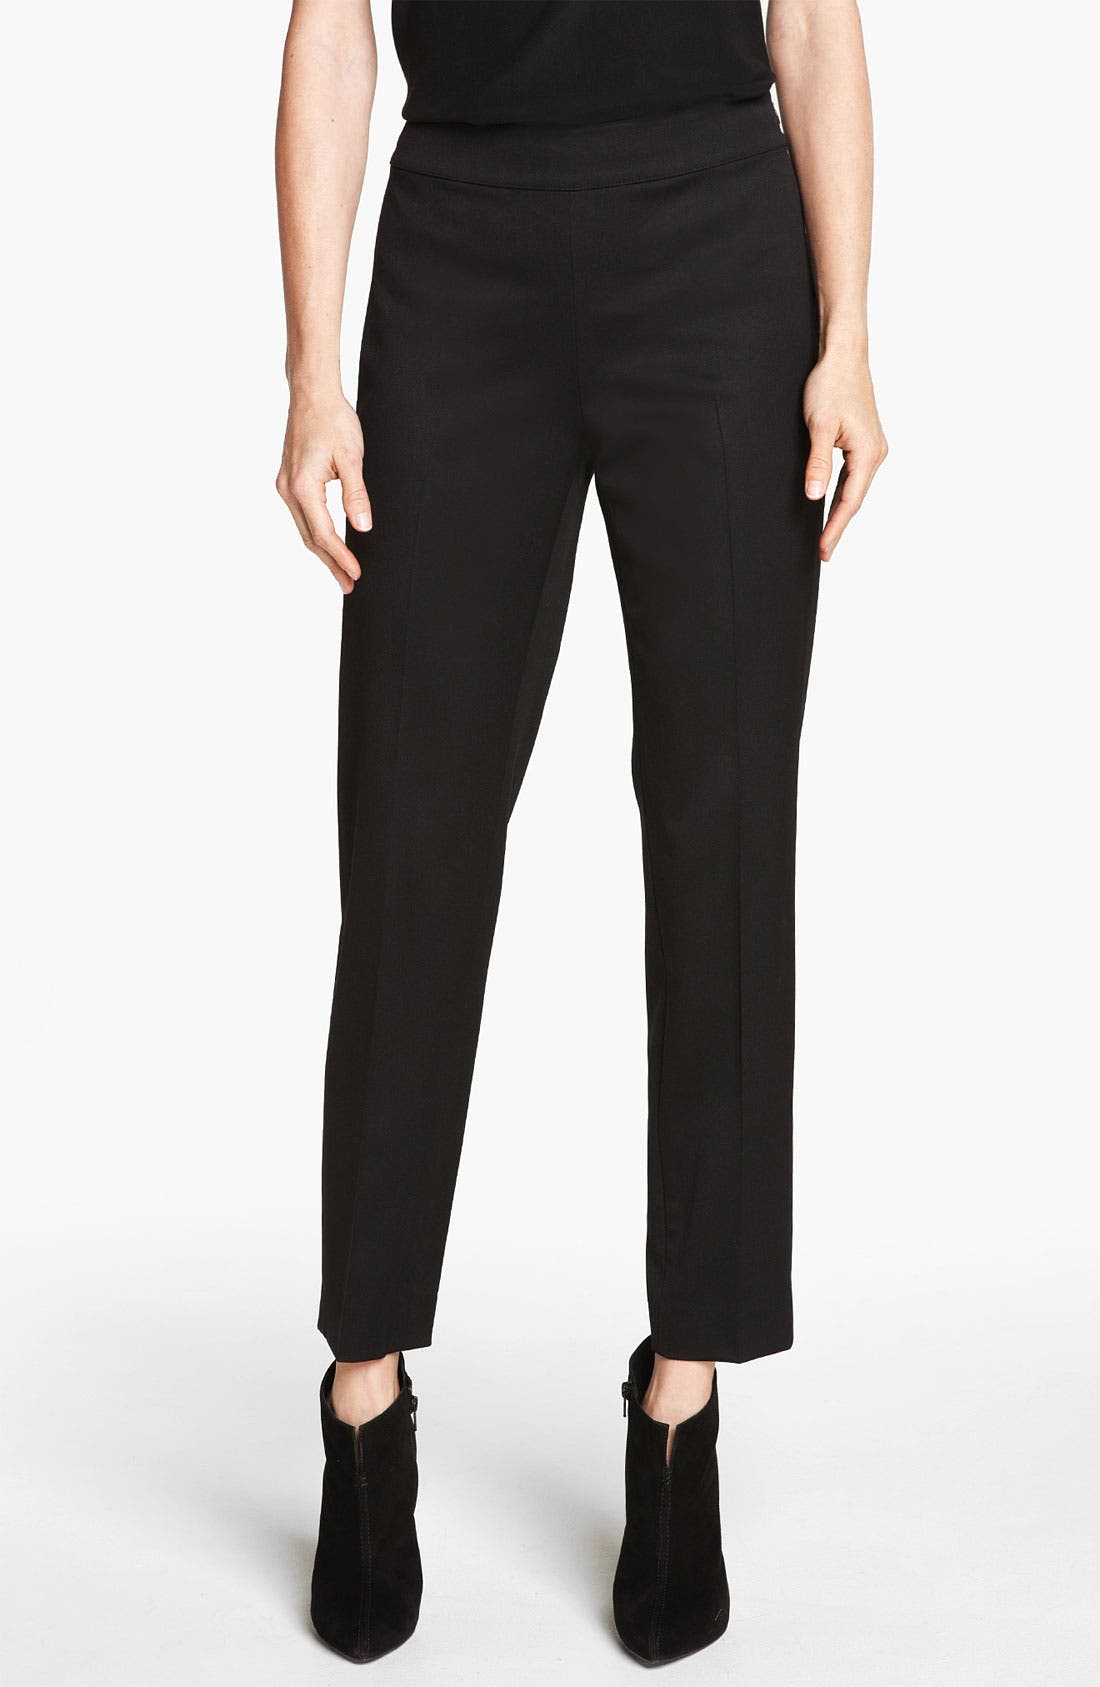 Main Image - St. John Collection 'Emma' Stretch Venetian Wool Crop Pants